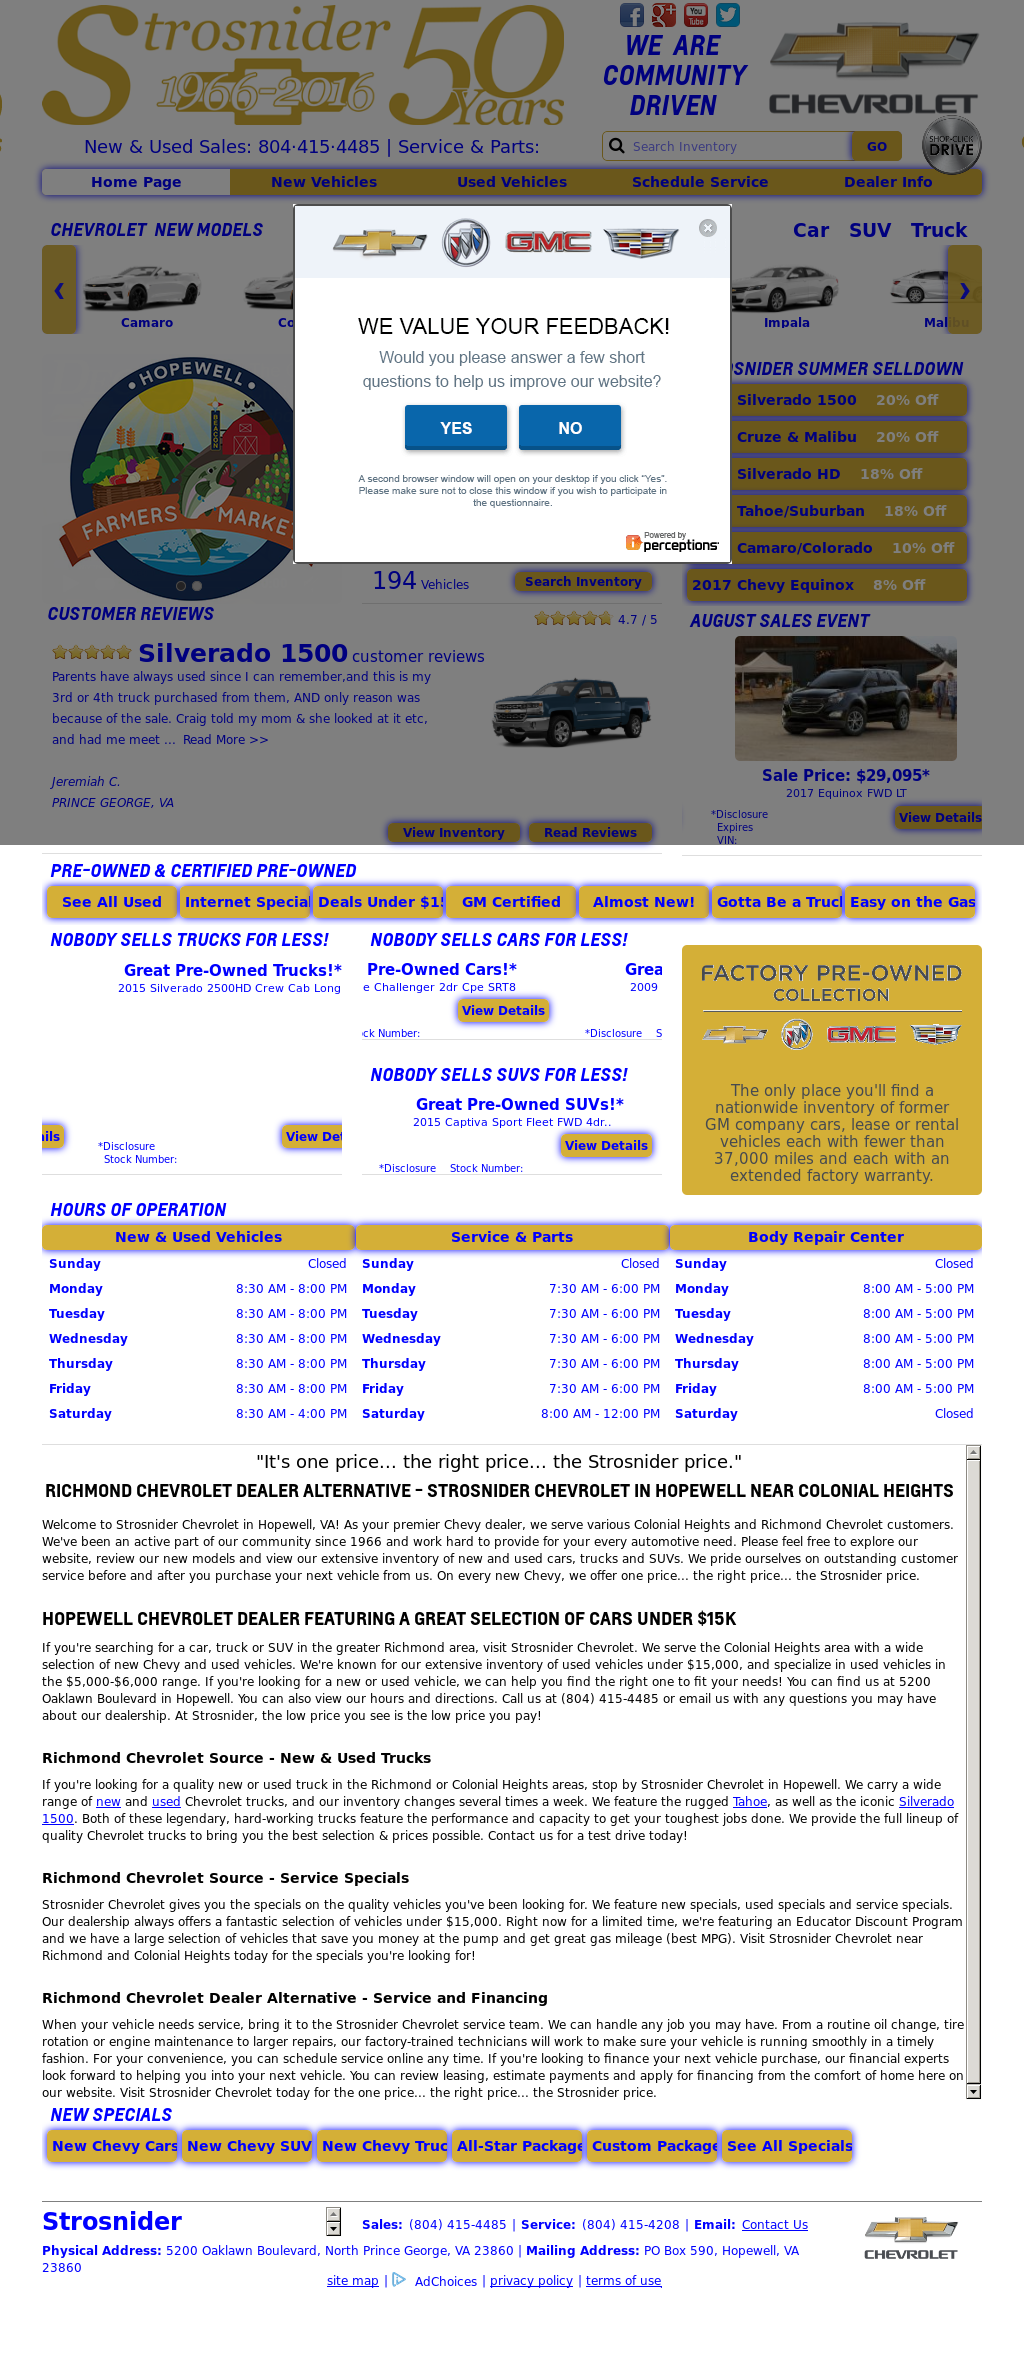 Strosnider Chevrolet Competitors Revenue And Employees Owler Company Profile